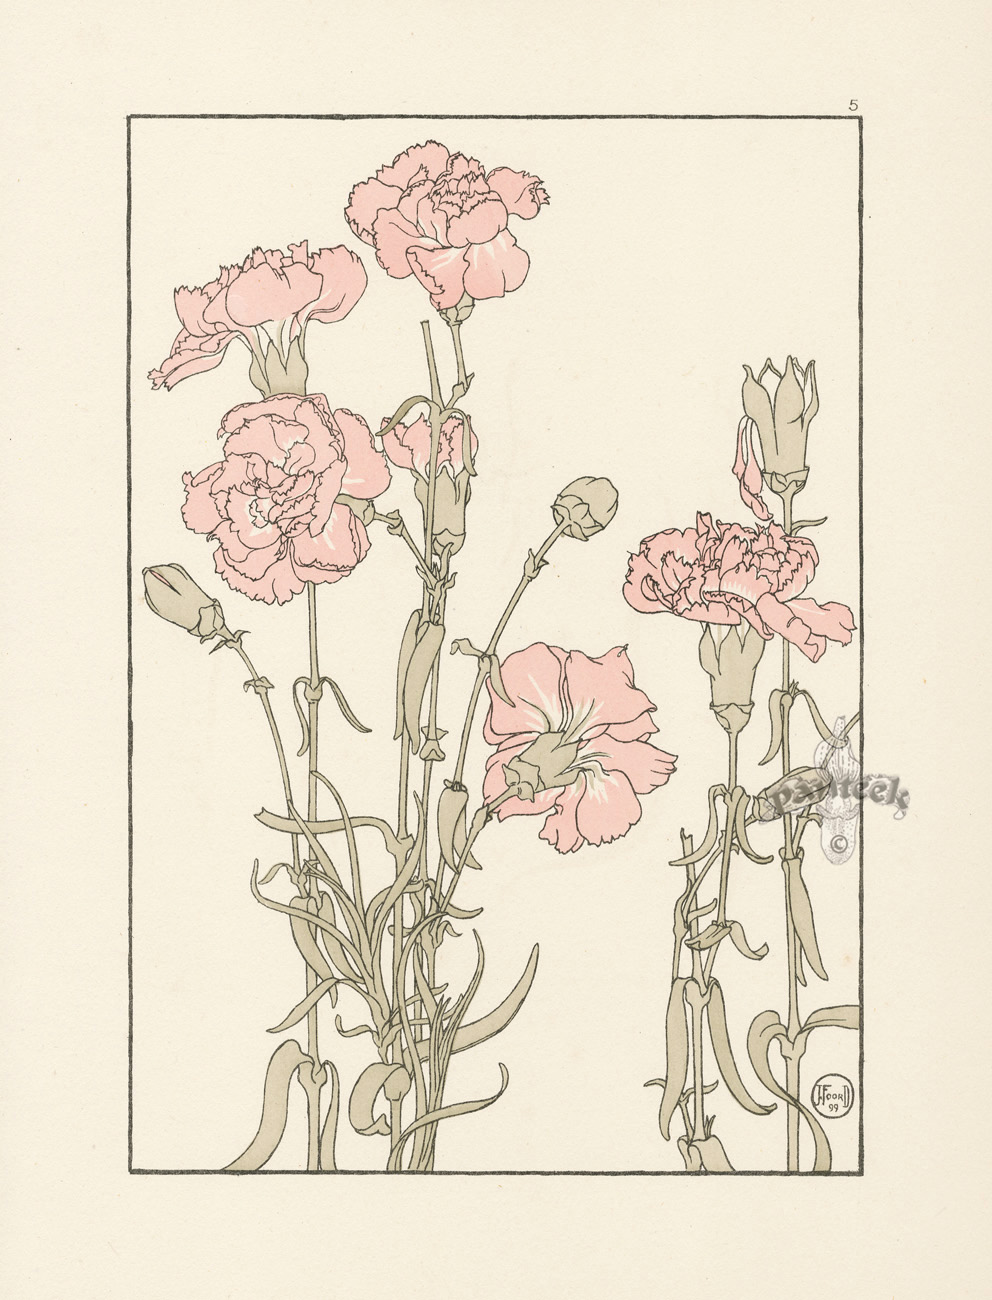 Foord pochoir flower studies 1901 for Pochoir technique